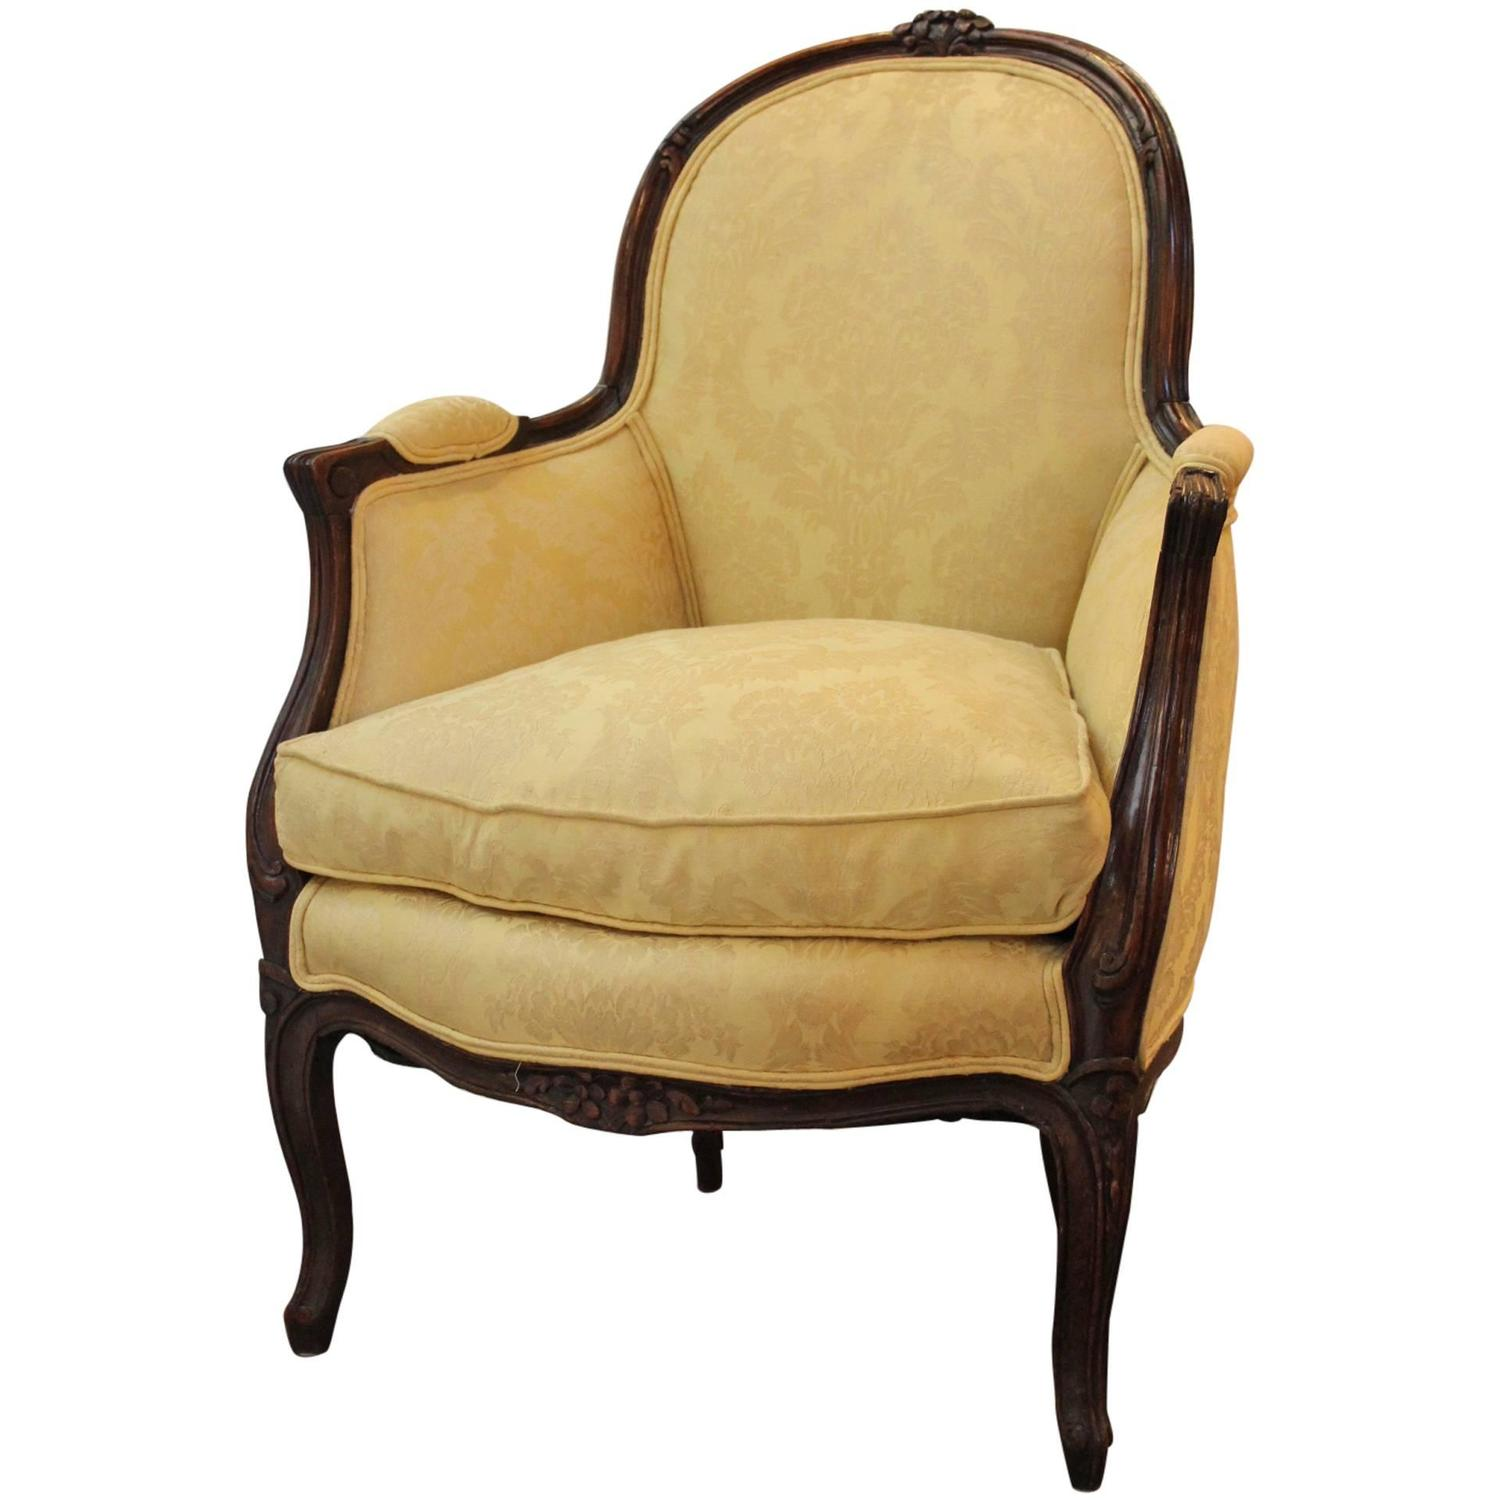 Antique Carved Oak French Bergere Chair For Sale at 1stdibs